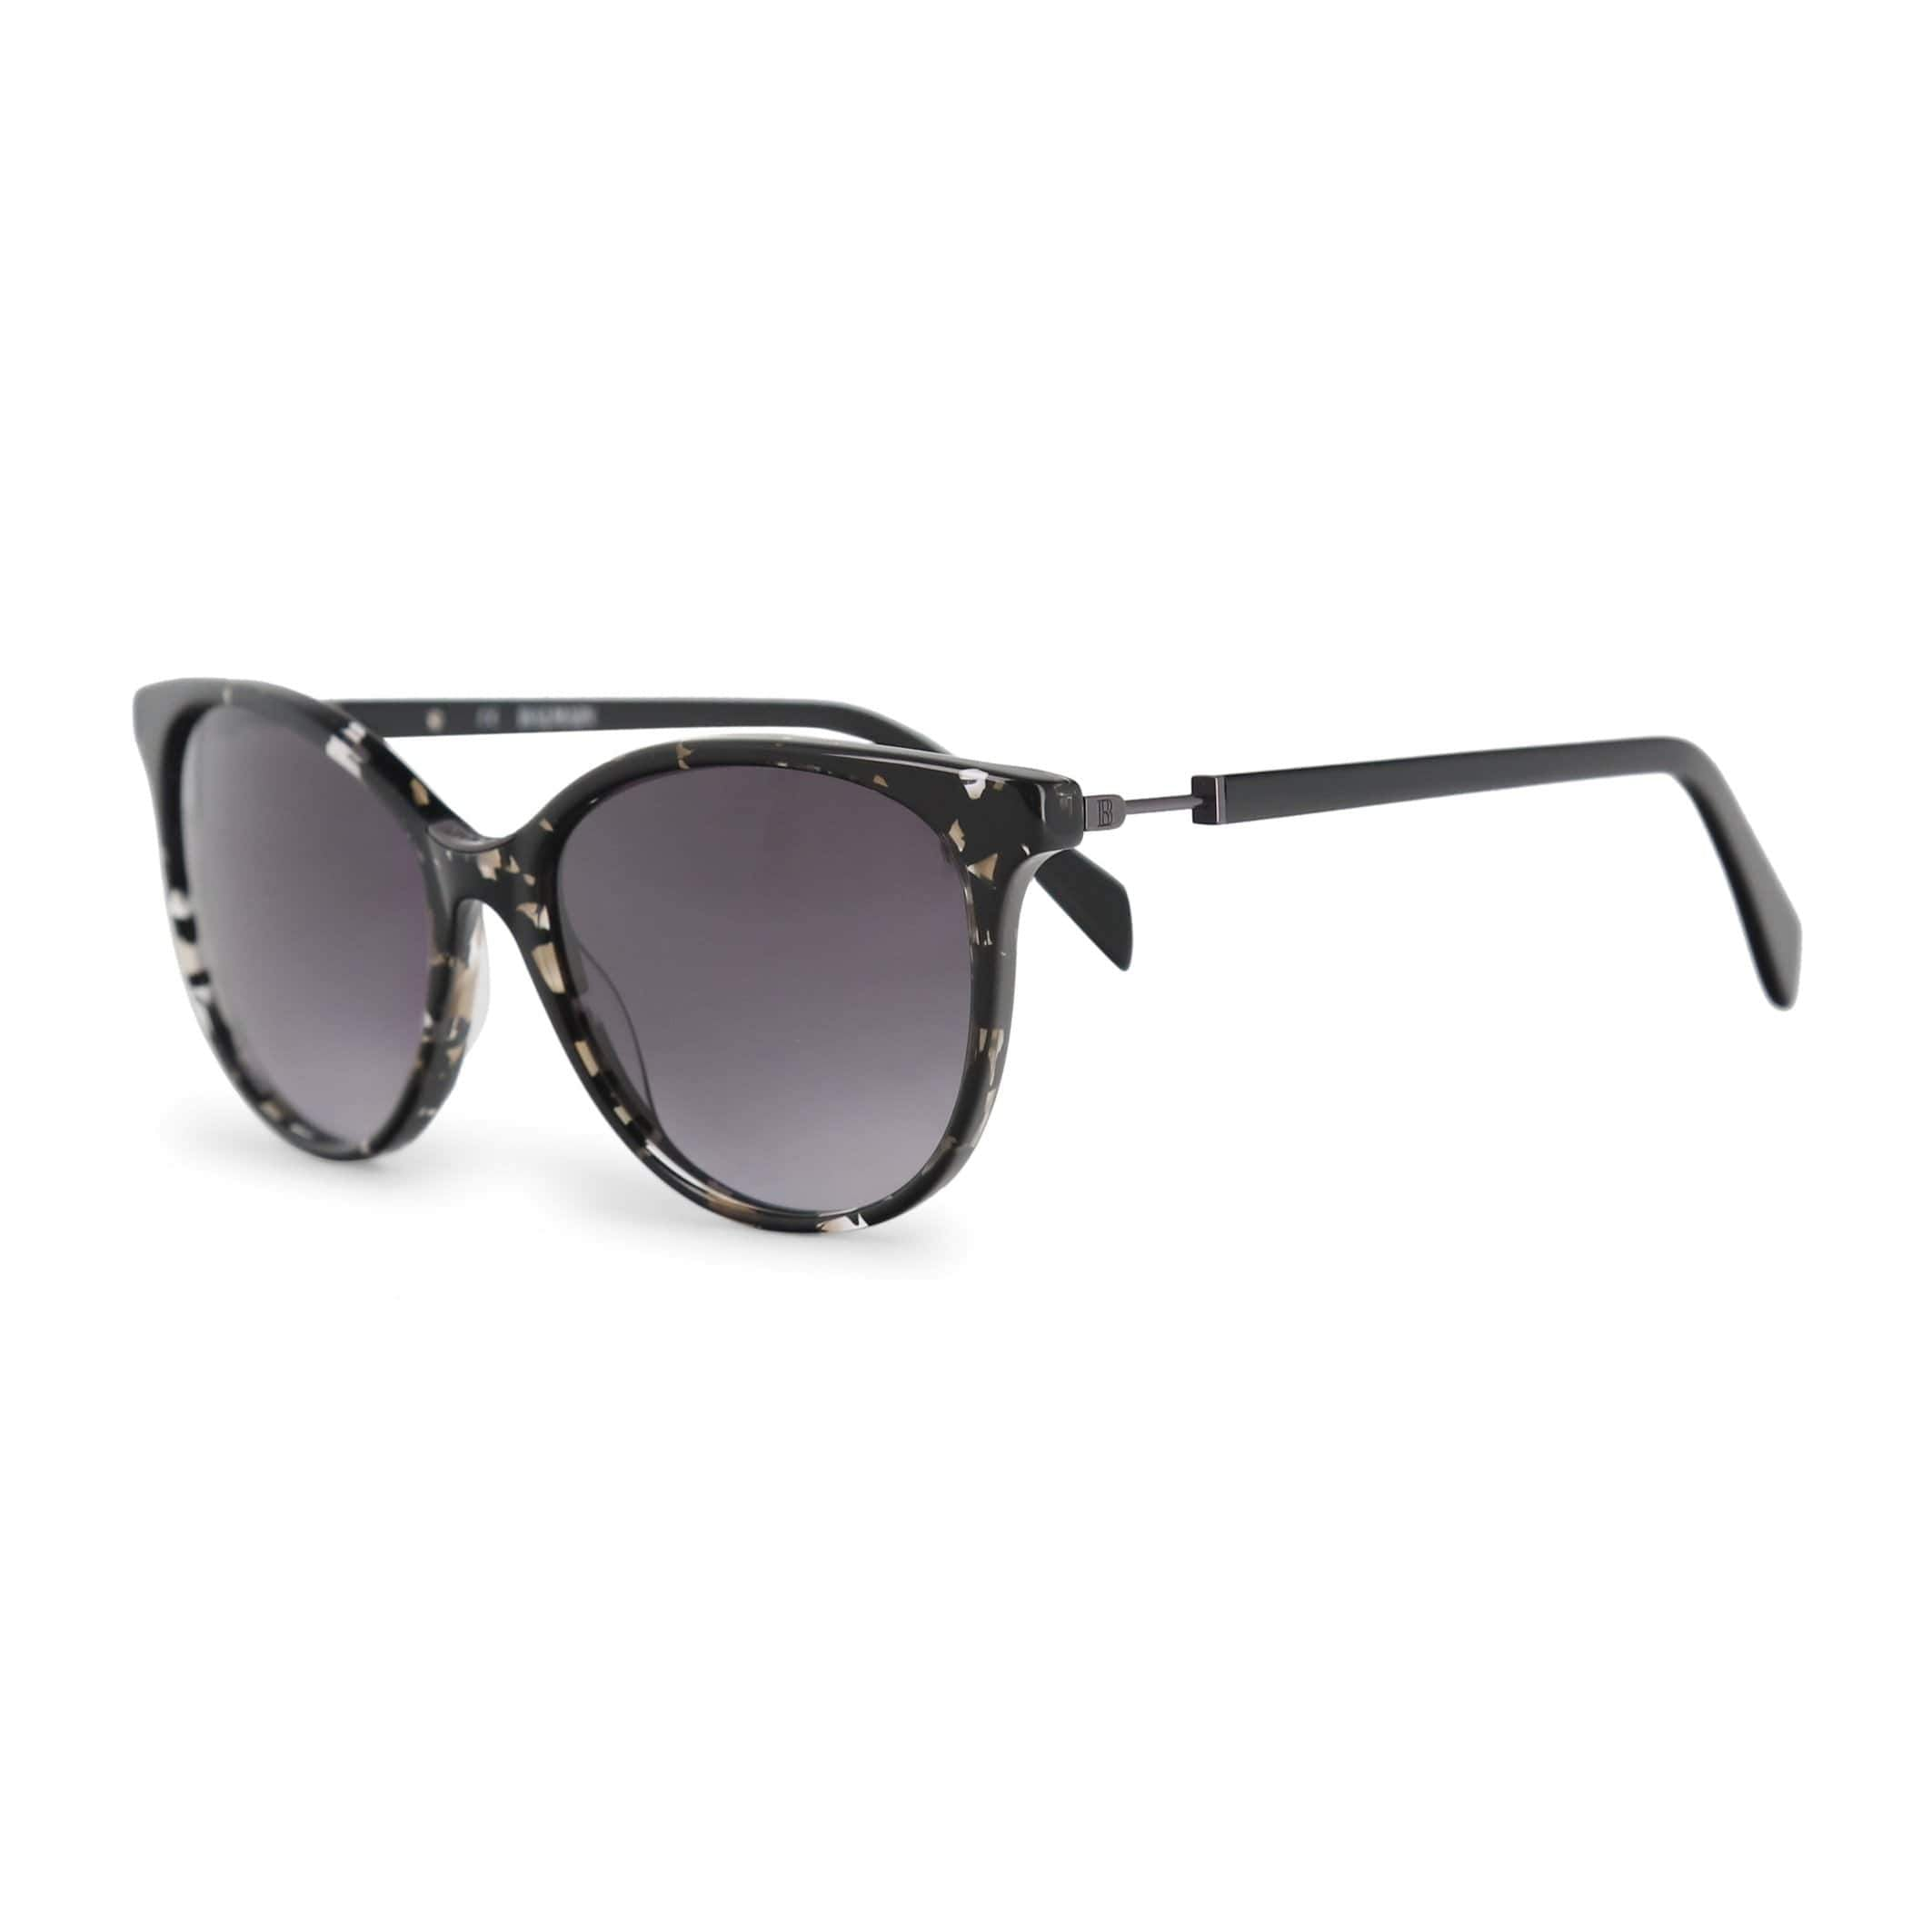 Balmain Accessories Sunglasses black / NOSIZE Balmain - BL2102